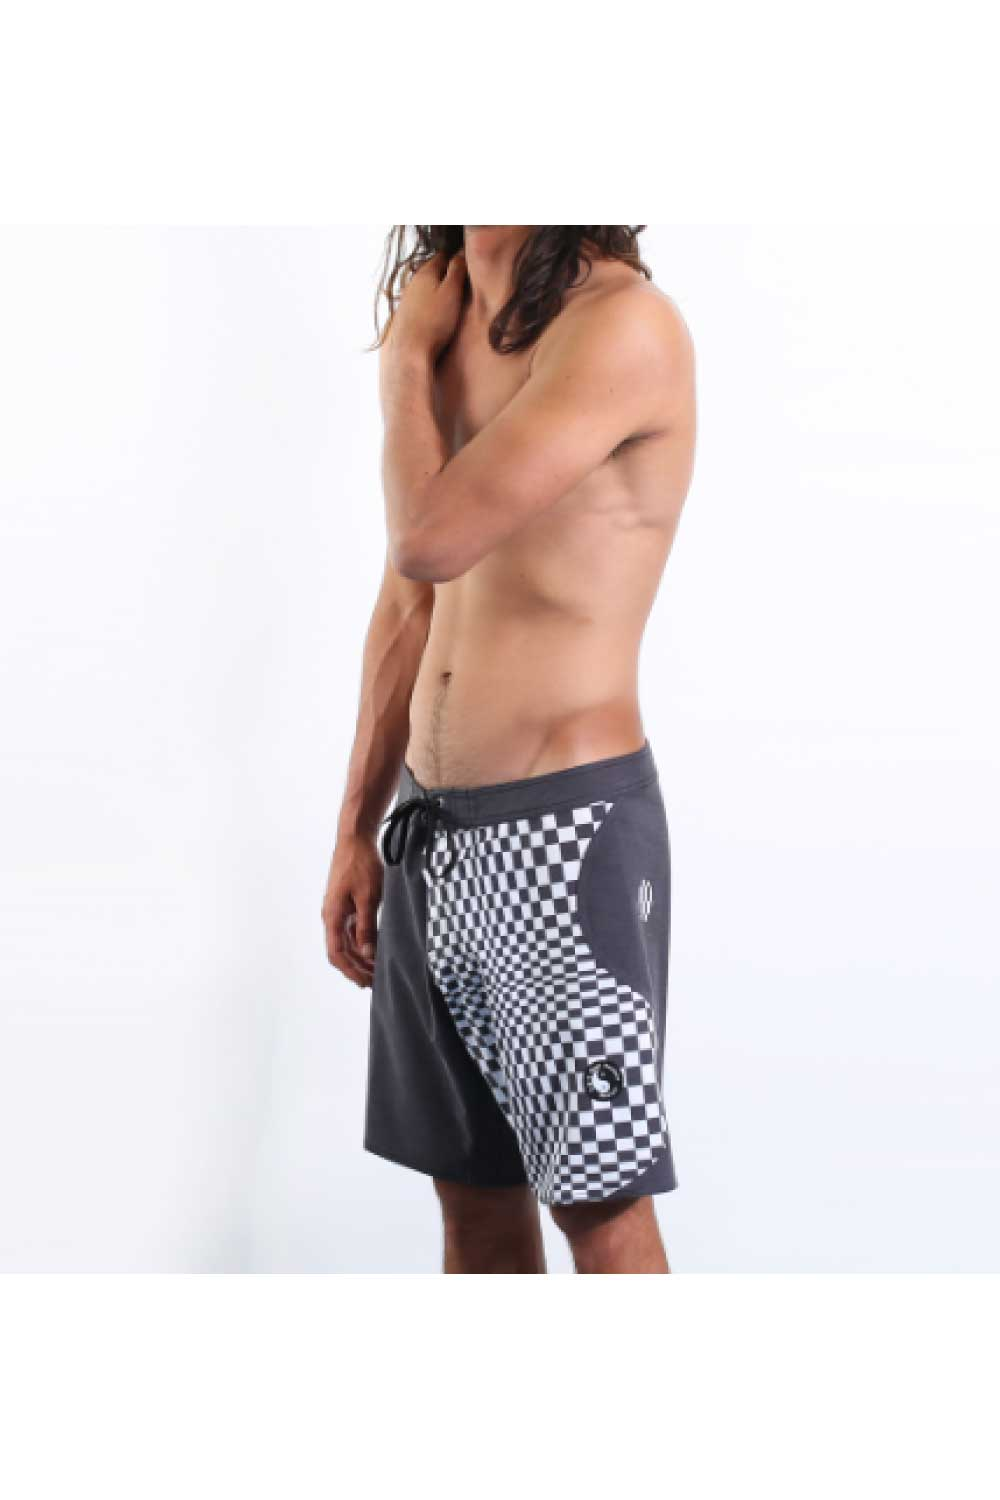 "Town & Country Ying Yang 17"" Men's Boardshorts Twisted Black"